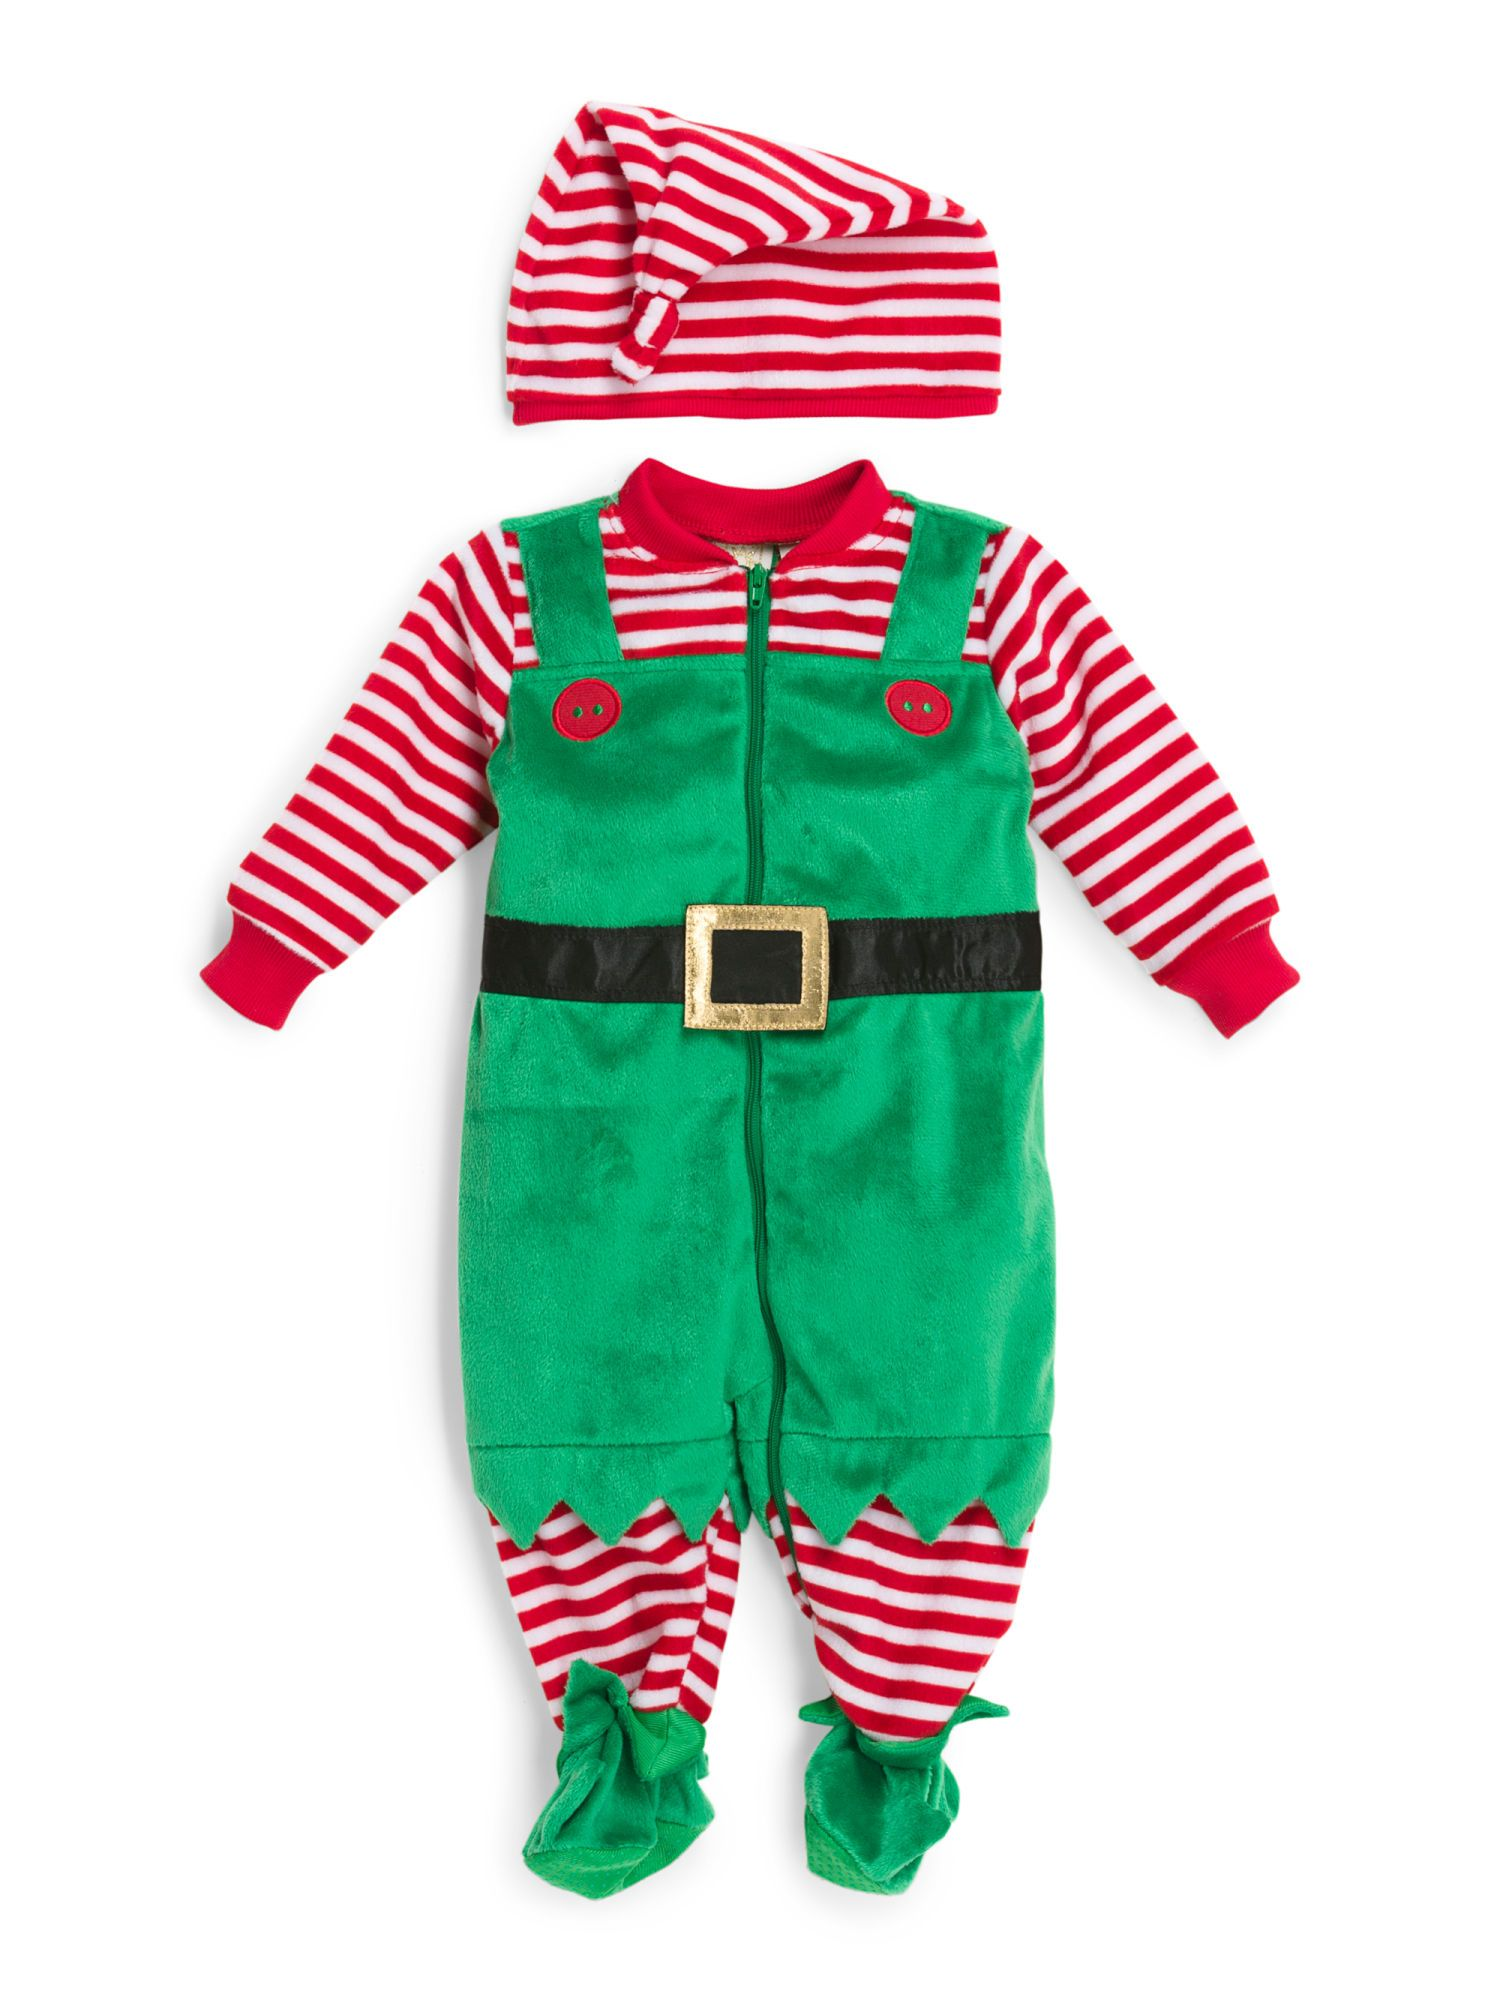 0a1582c82 Baby elf outfit, so cute. | Holidays | Elf clothes, Elf costume ...